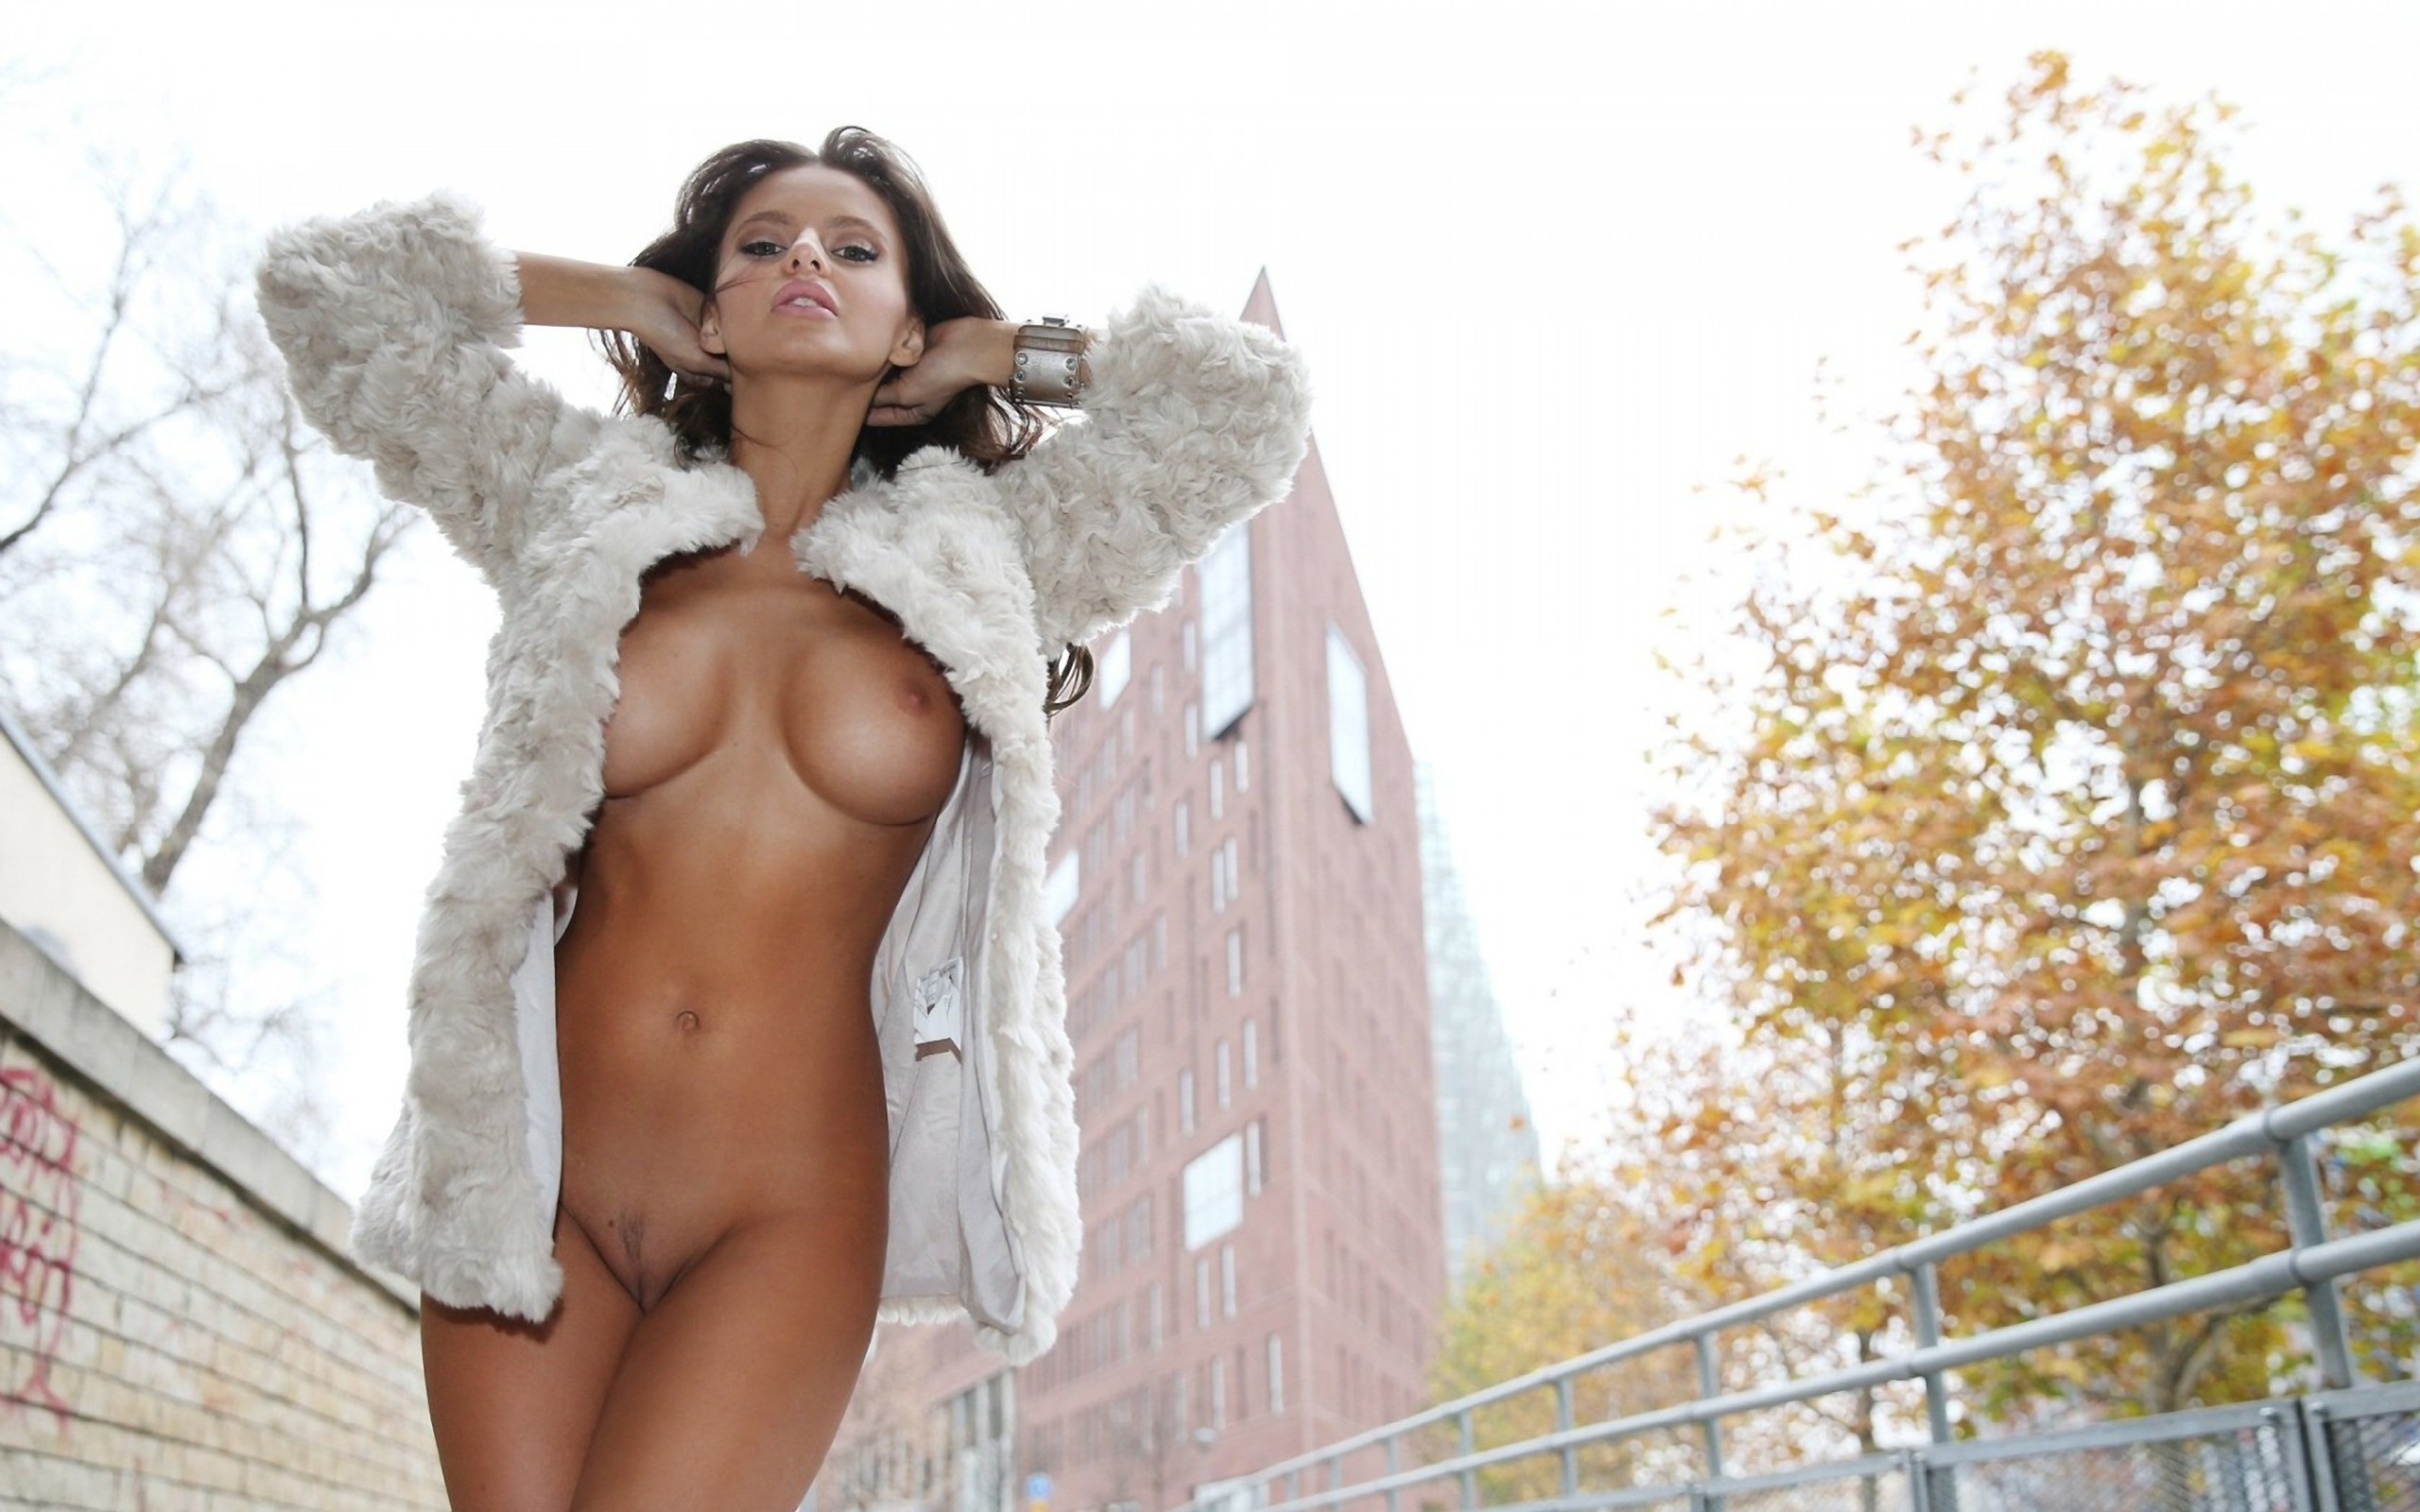 Dana flashes about town and masturbates naked part2